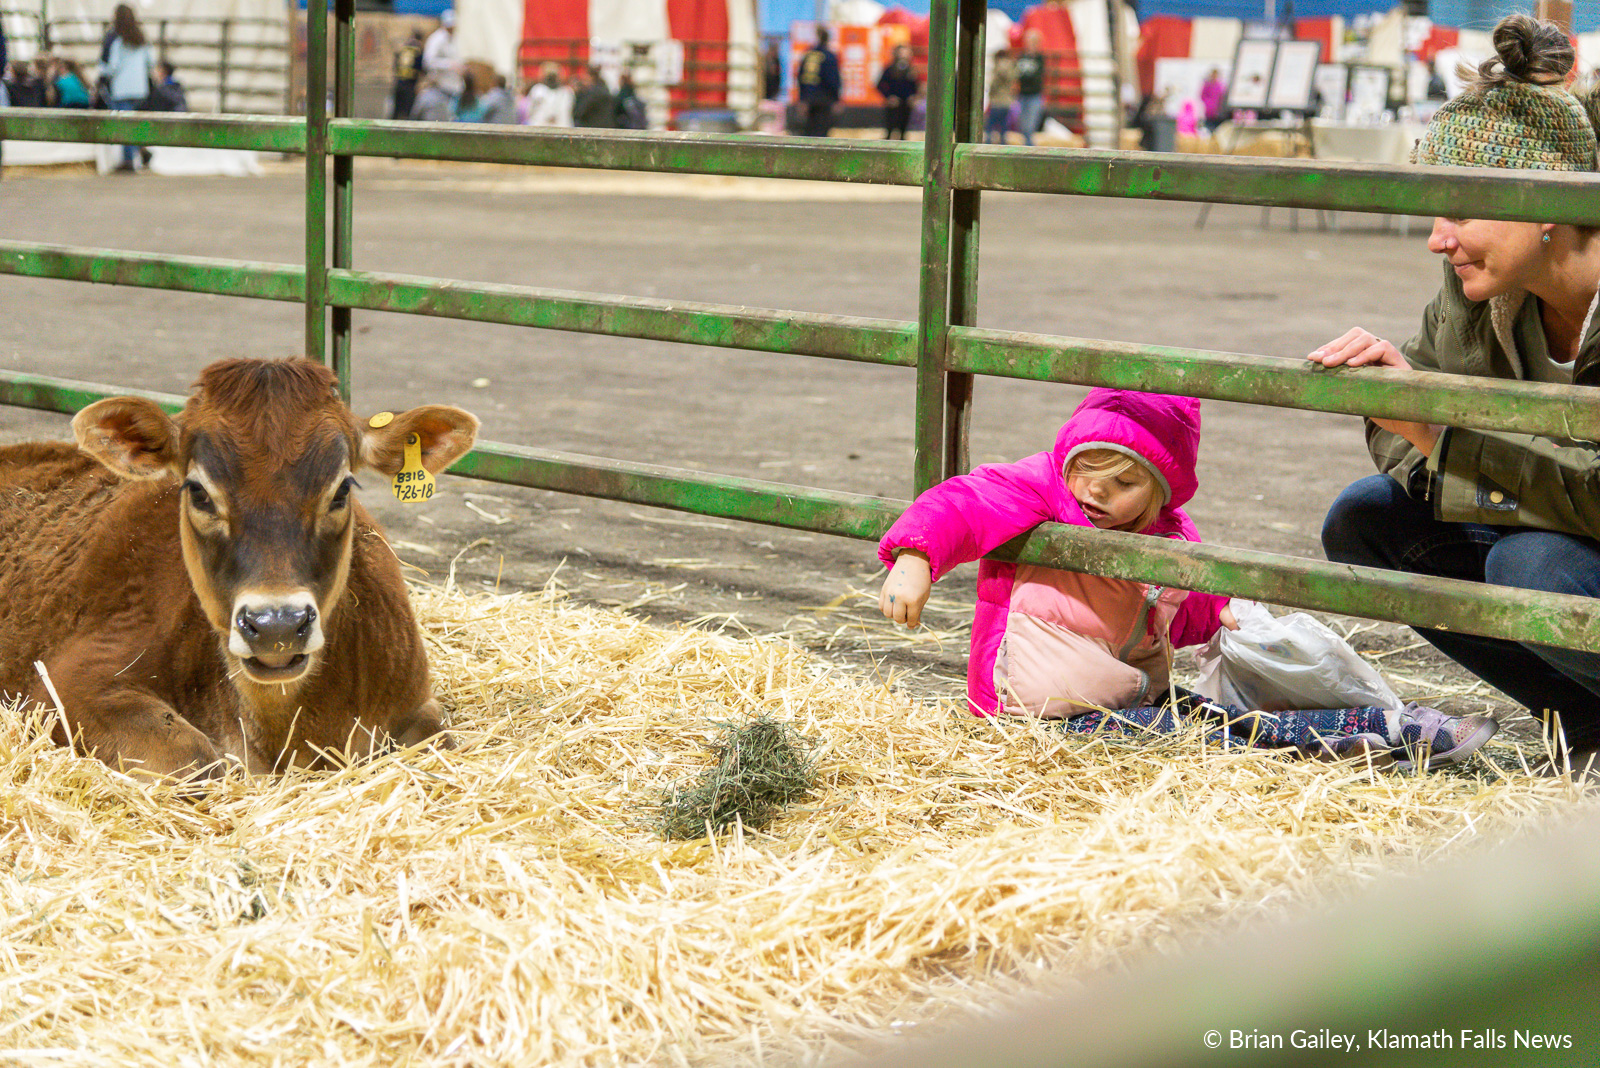 2019 Farm Expo. February 21, 2019. Image by Brian Gailey/Klamath Falls News.